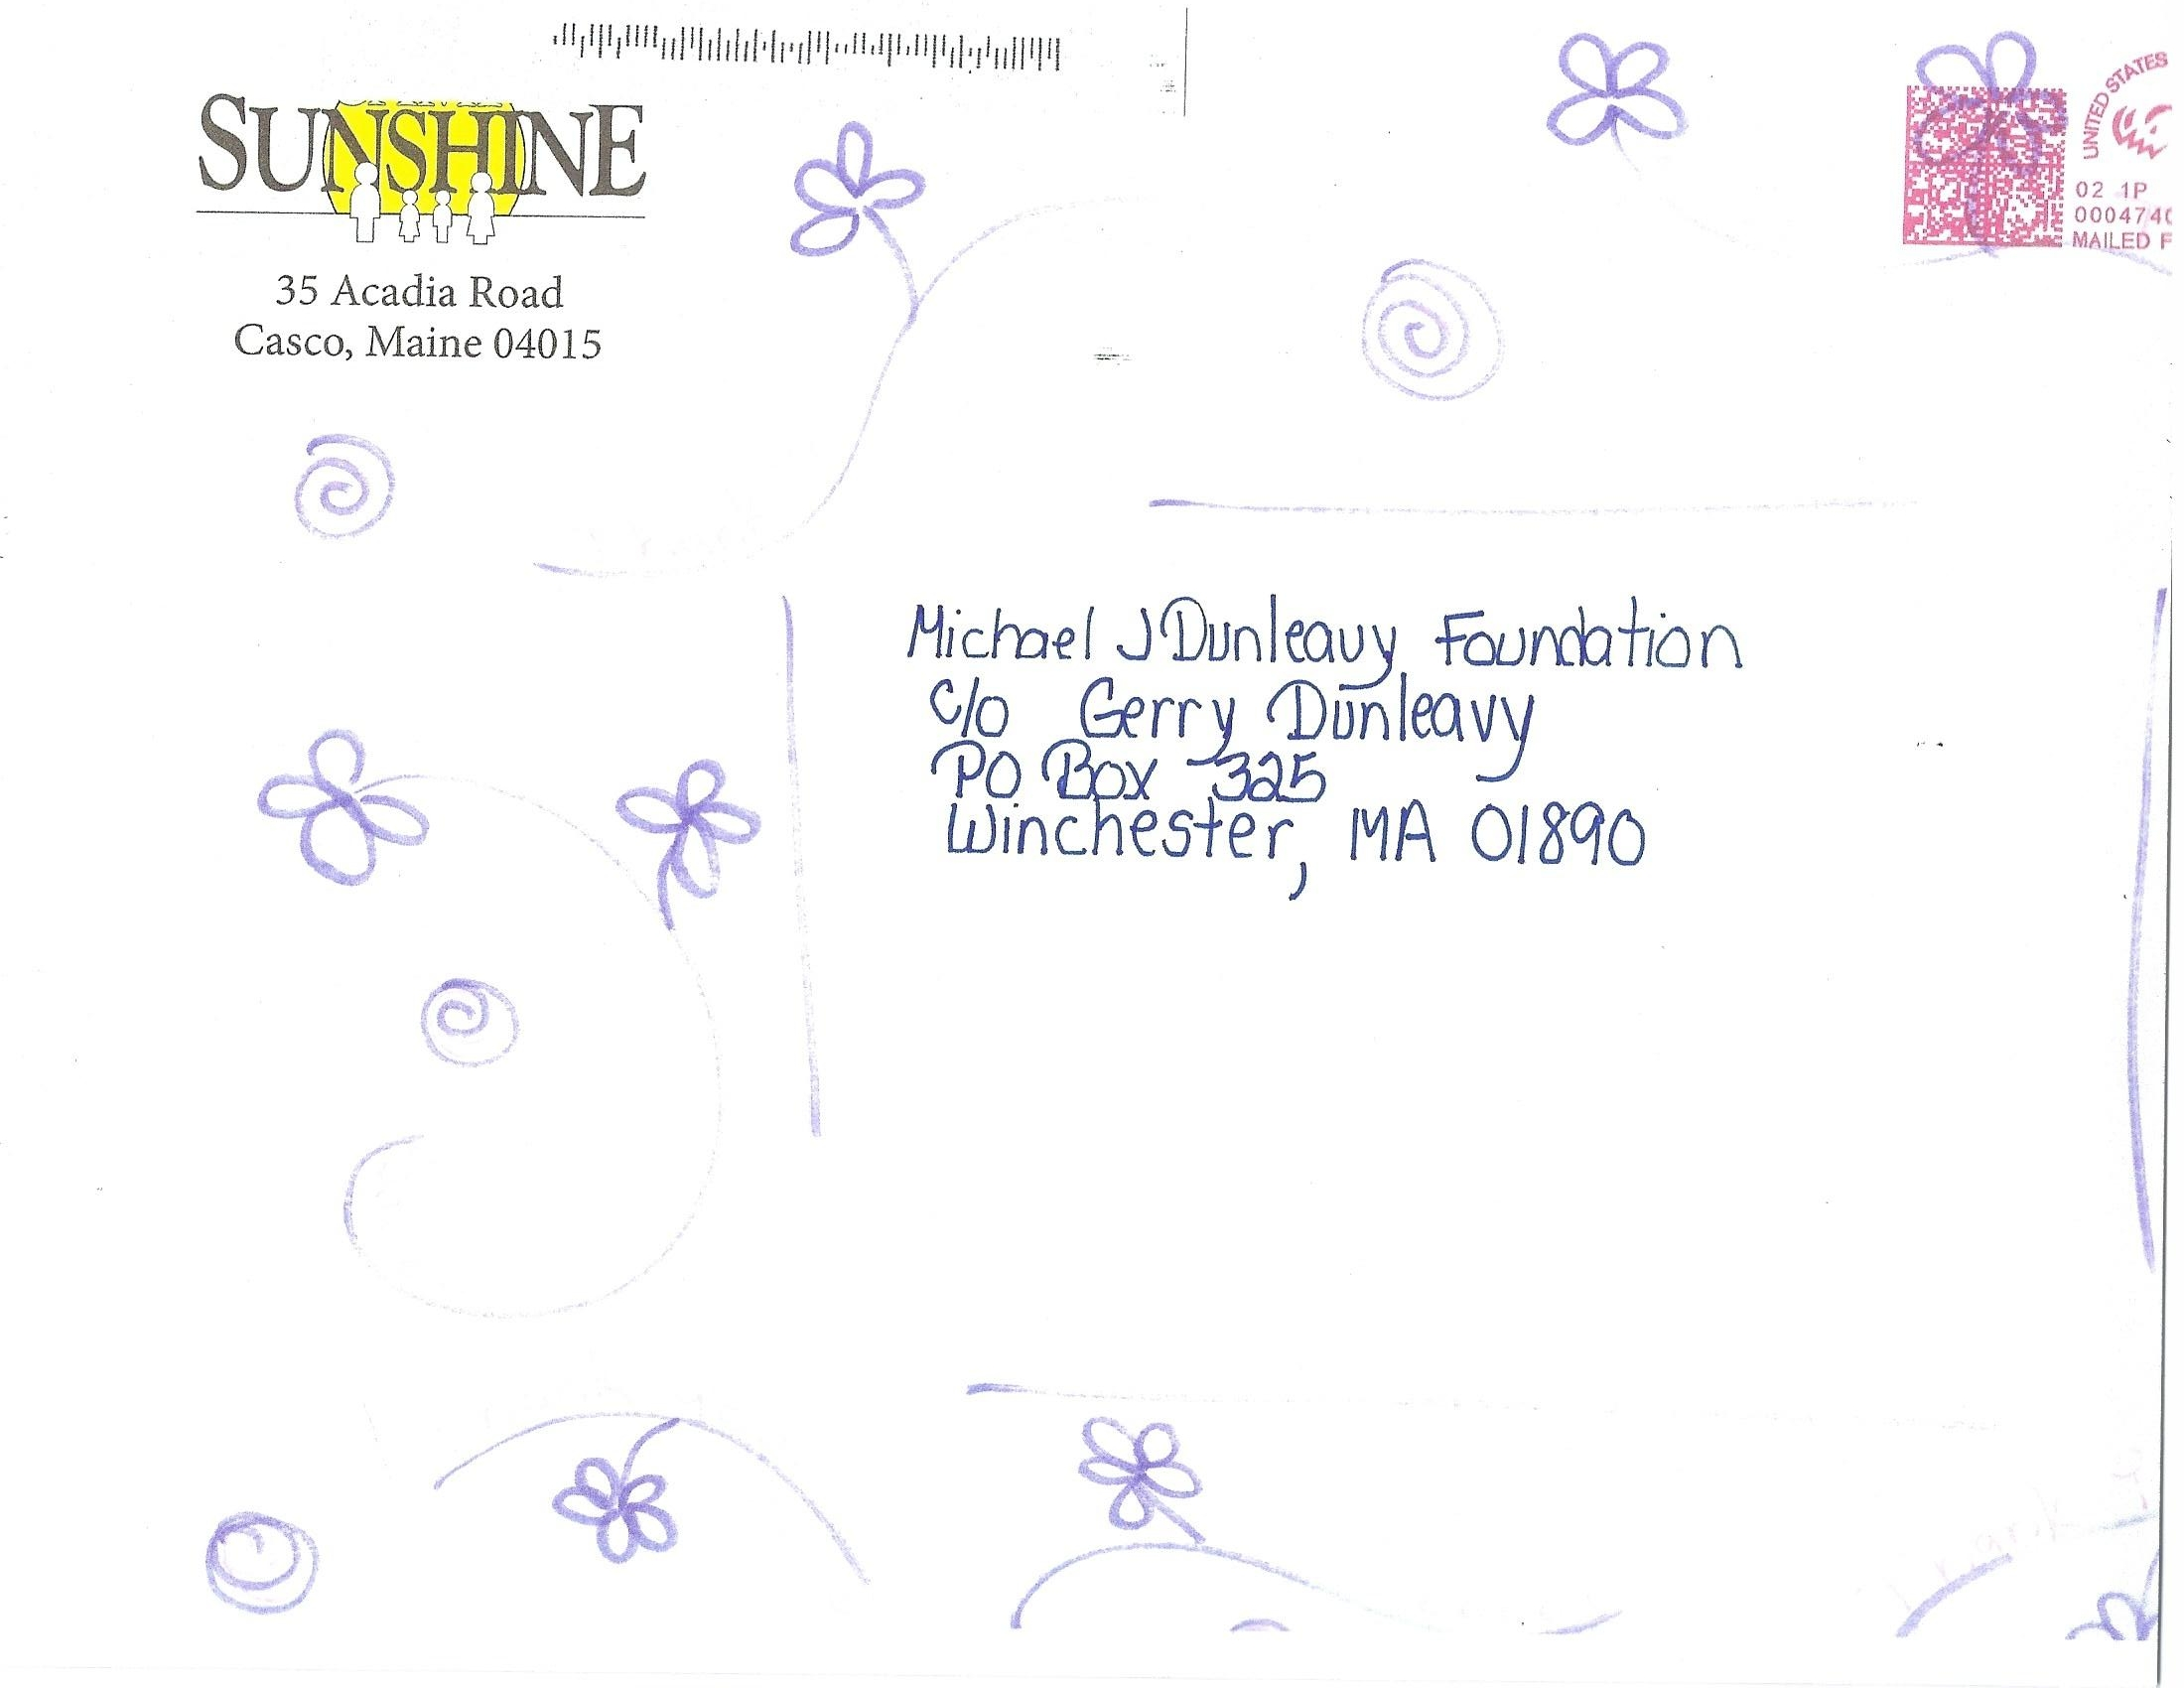 MJD TY note from Camp Sun shine guest_0001.jpg